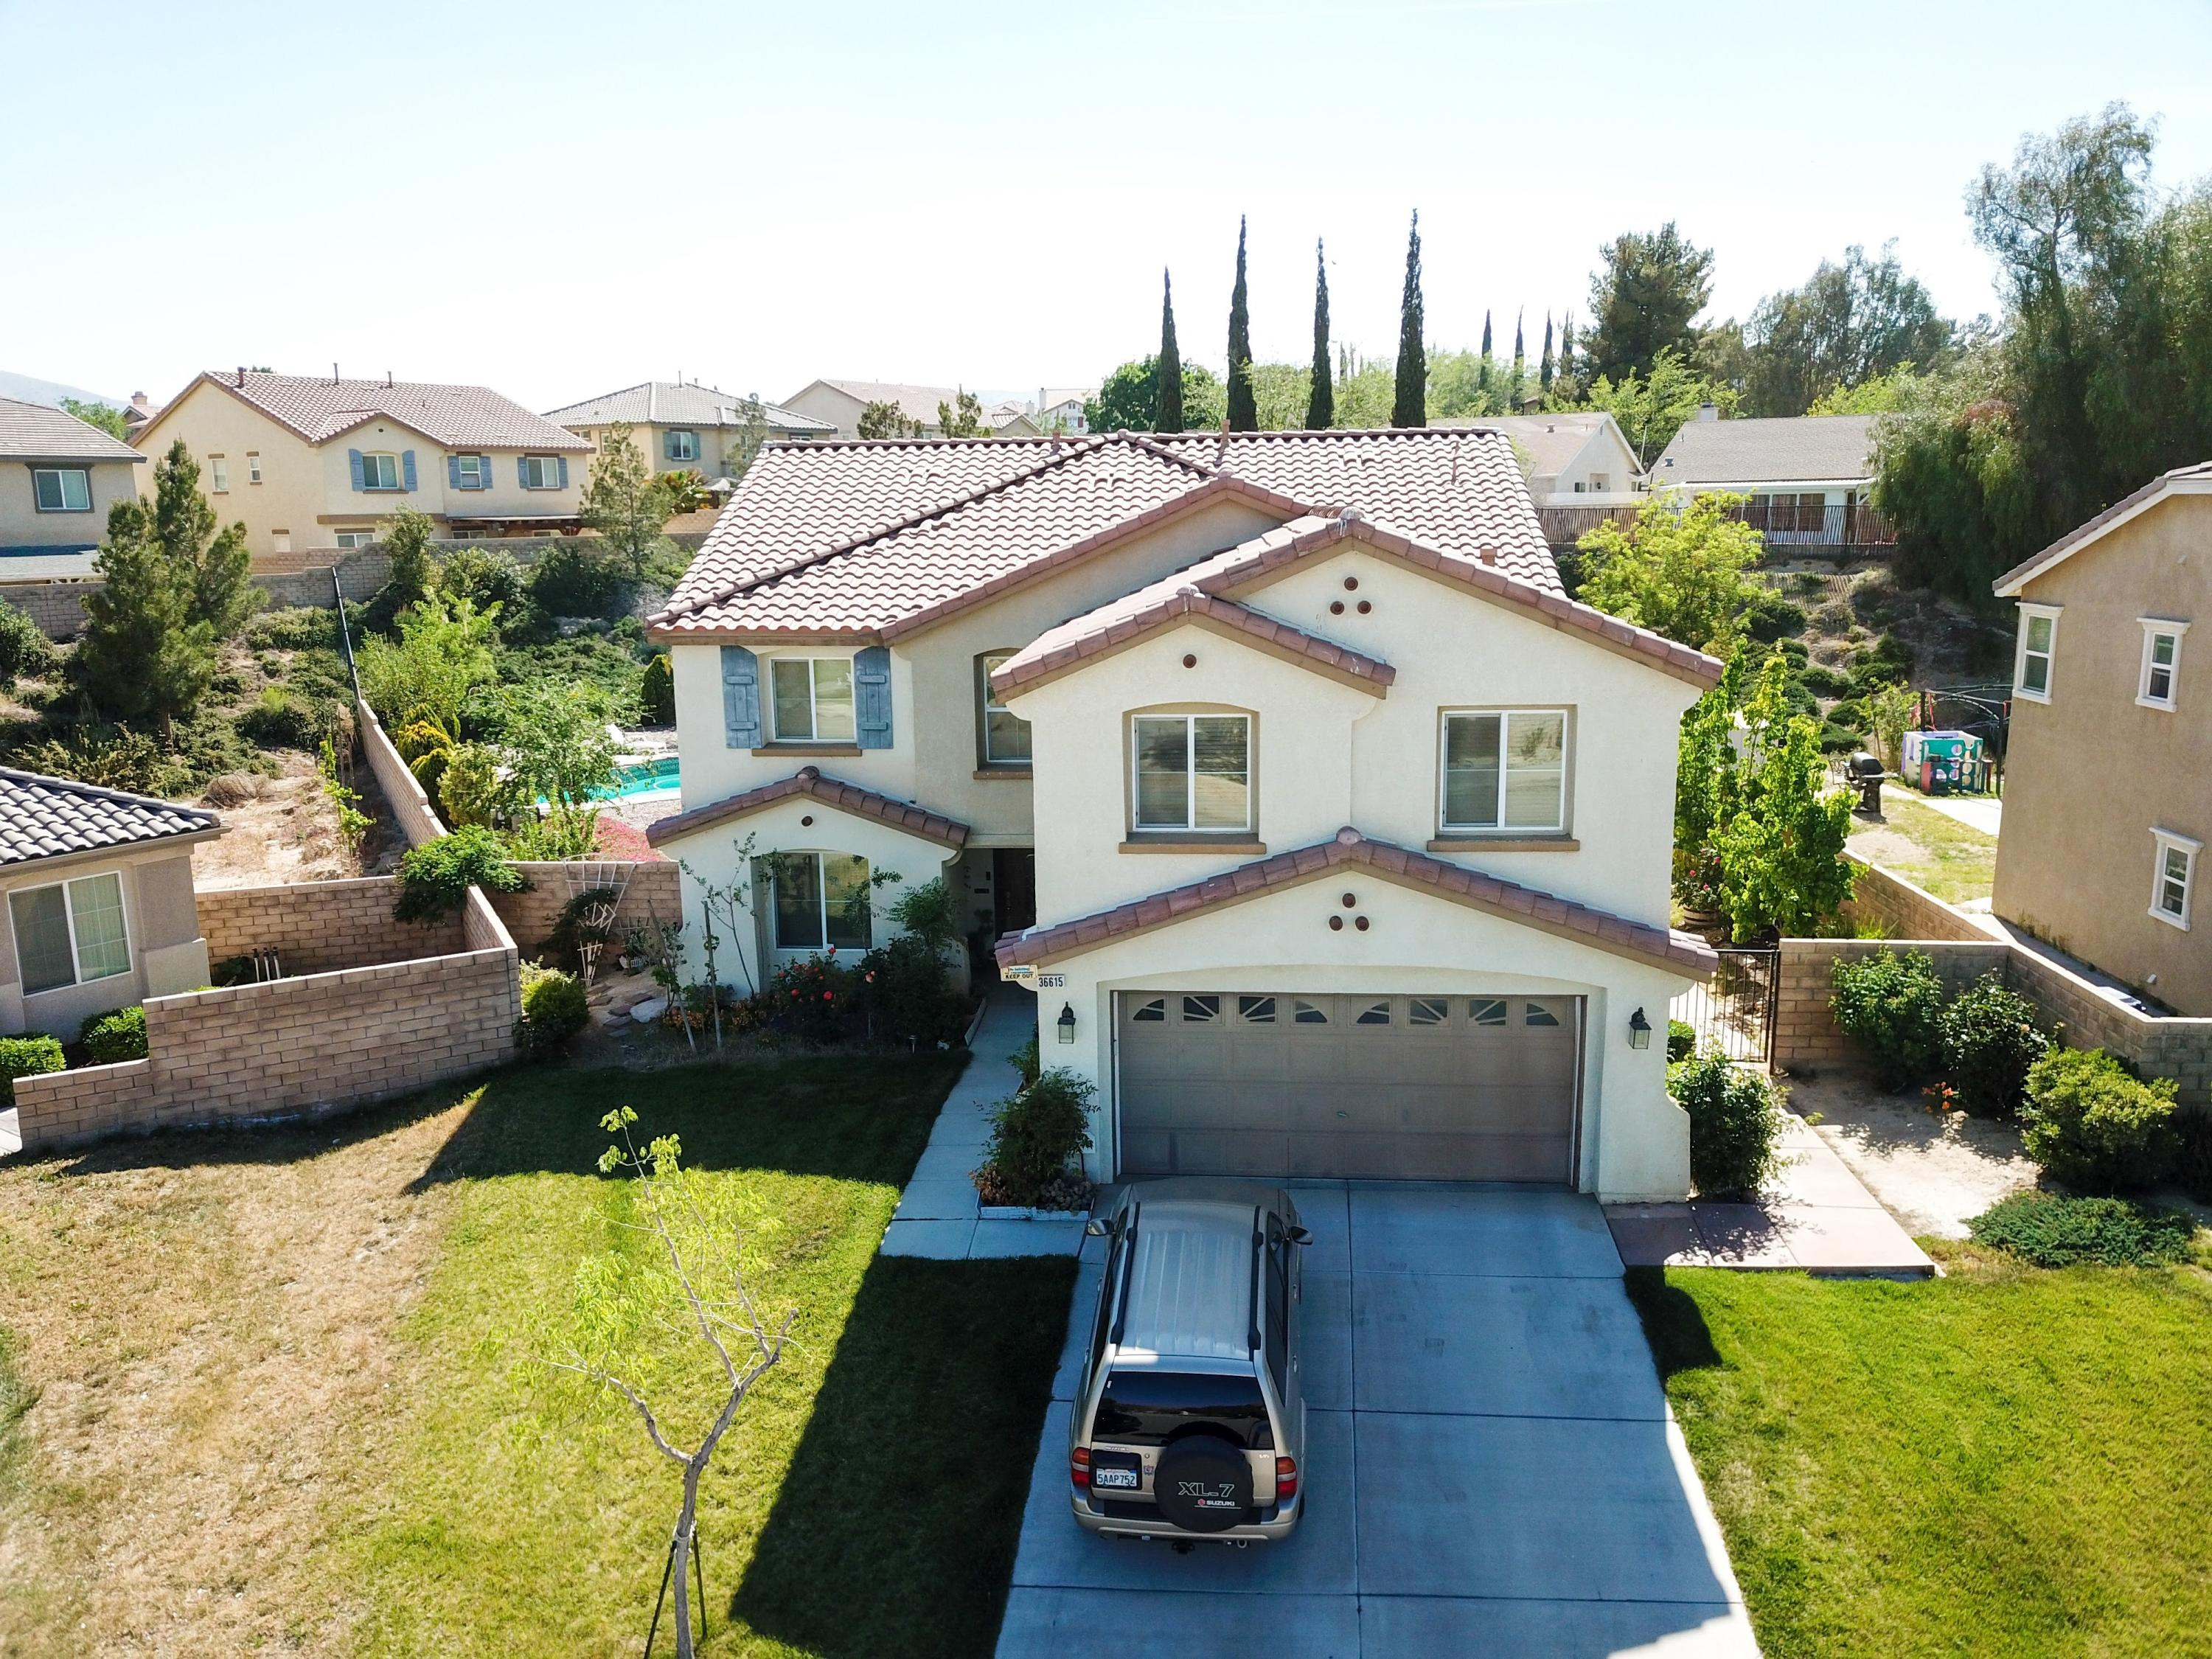 36615 E Quito Way, Palmdale CA, 93550